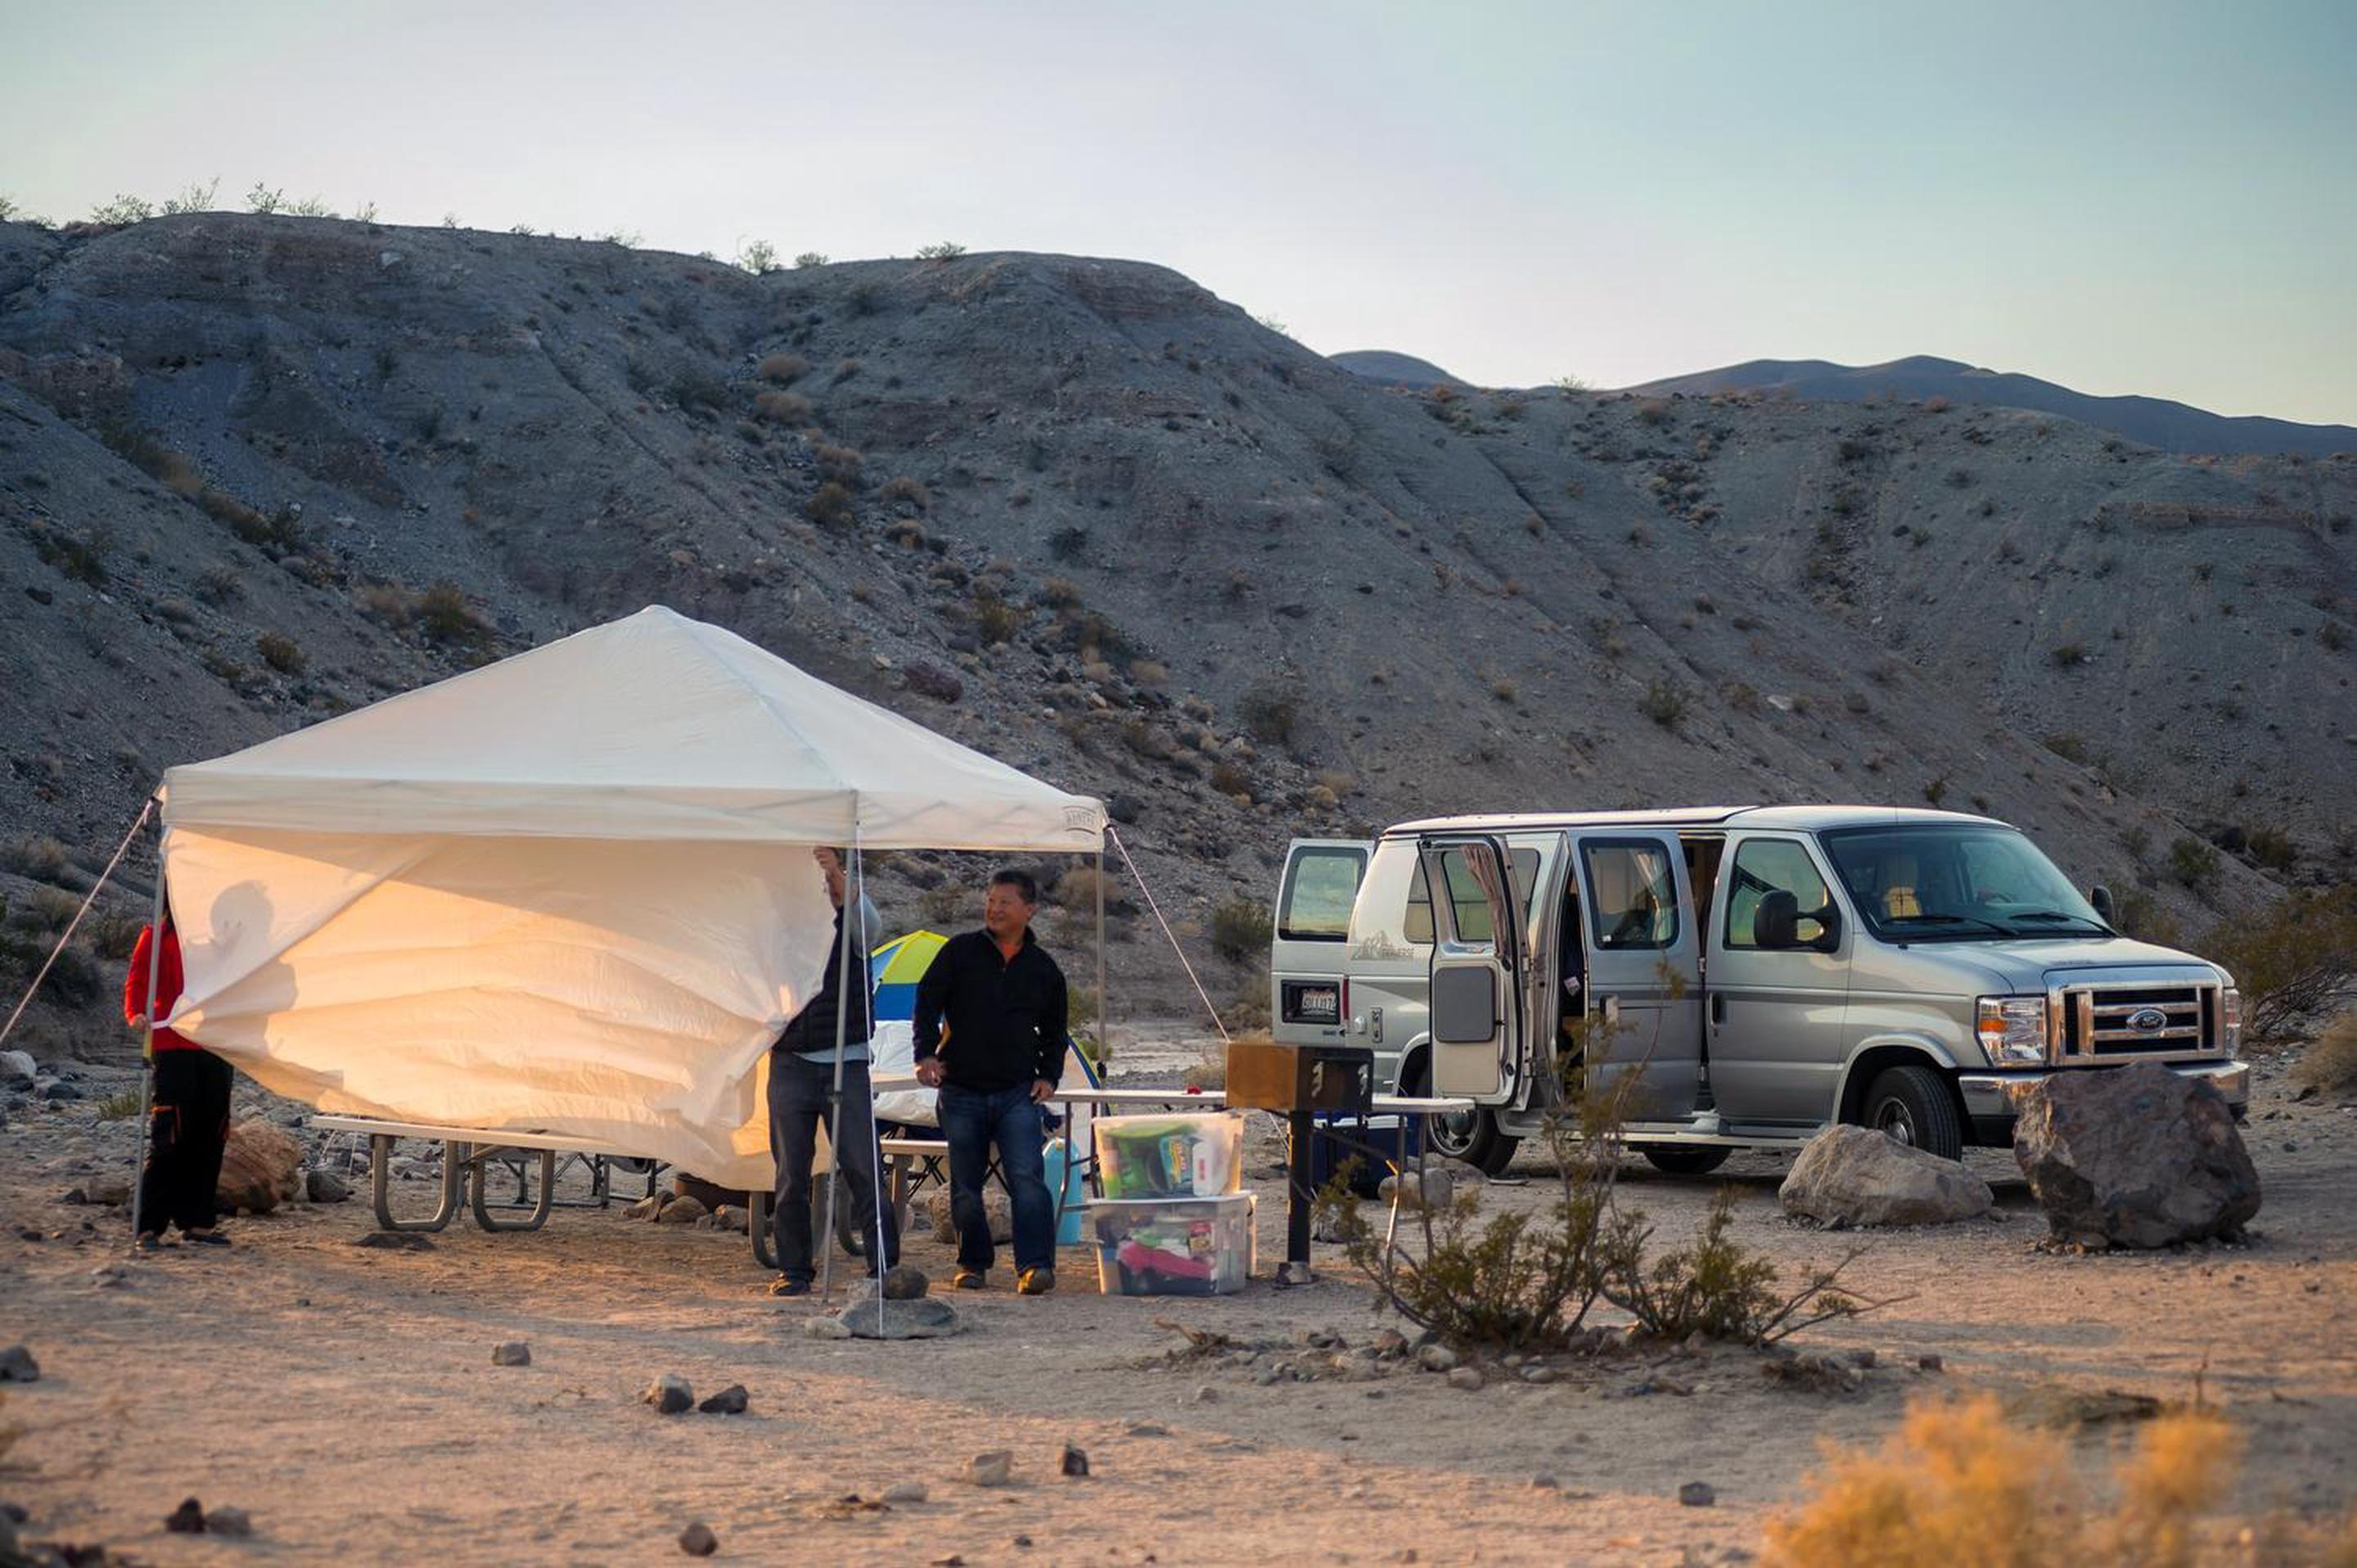 Mesquite Springs camp siteCamping at Mesquite Springs.